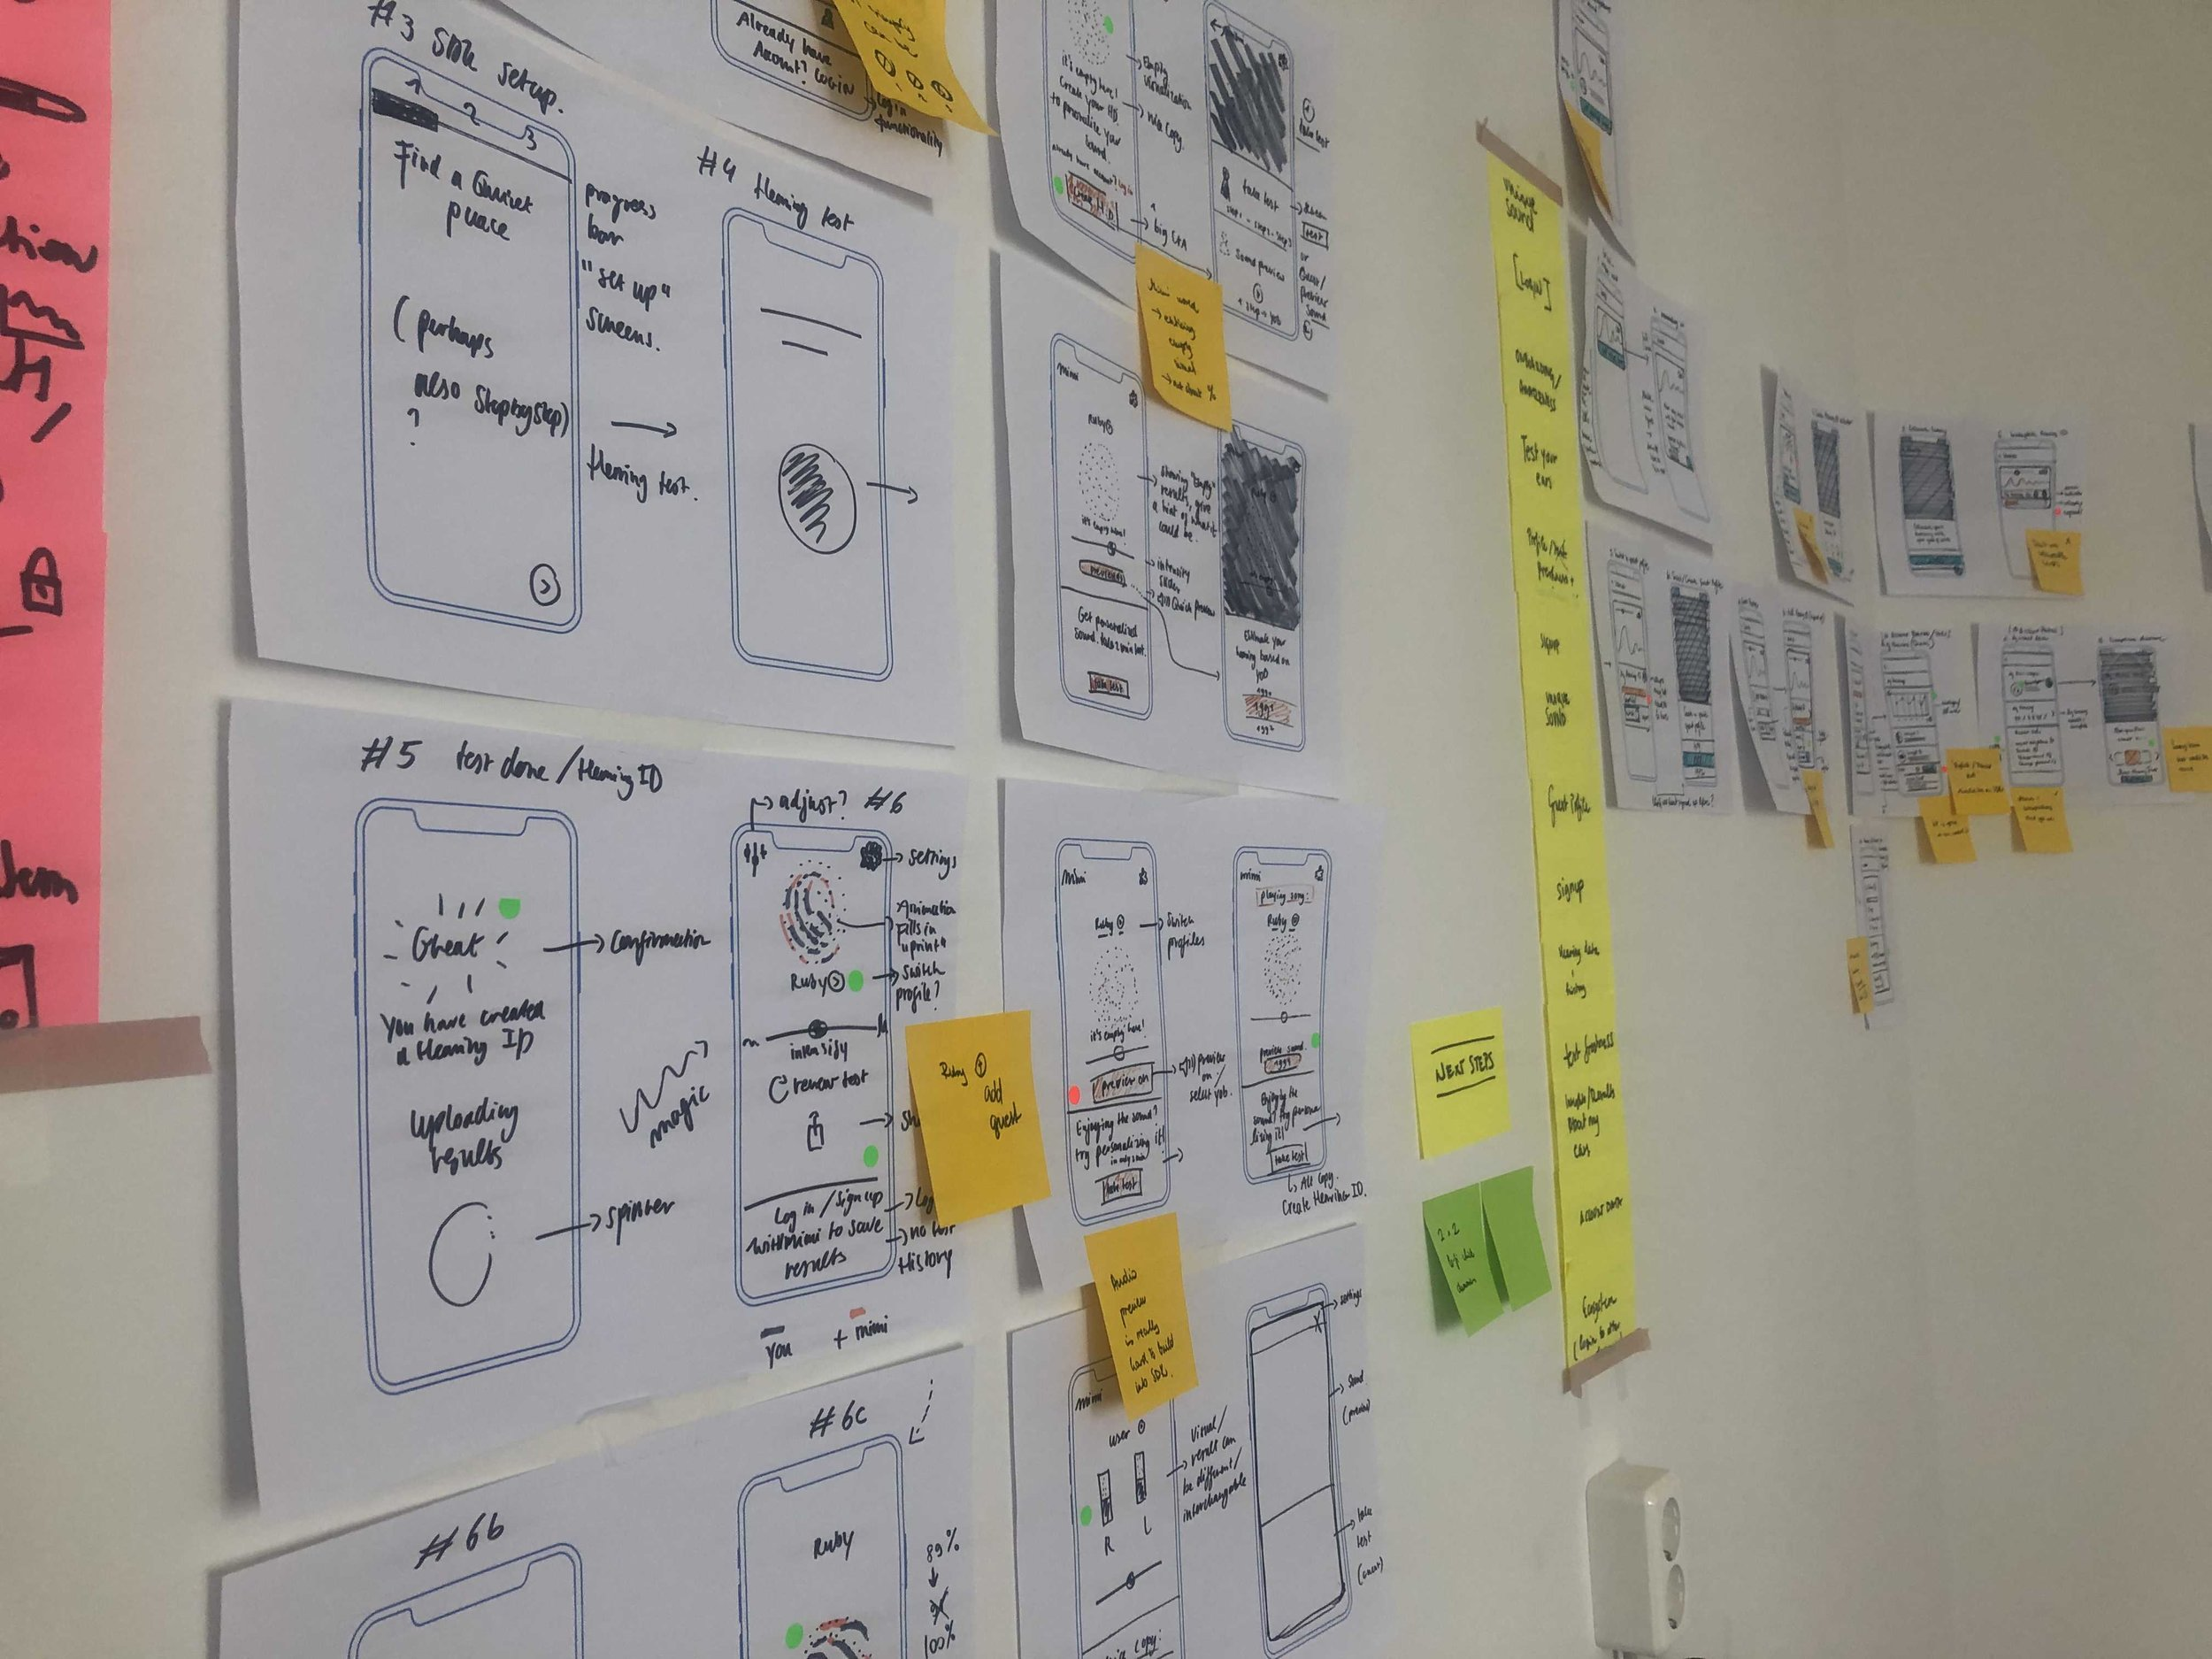 Outcomes of a design sparring session with mobile developers